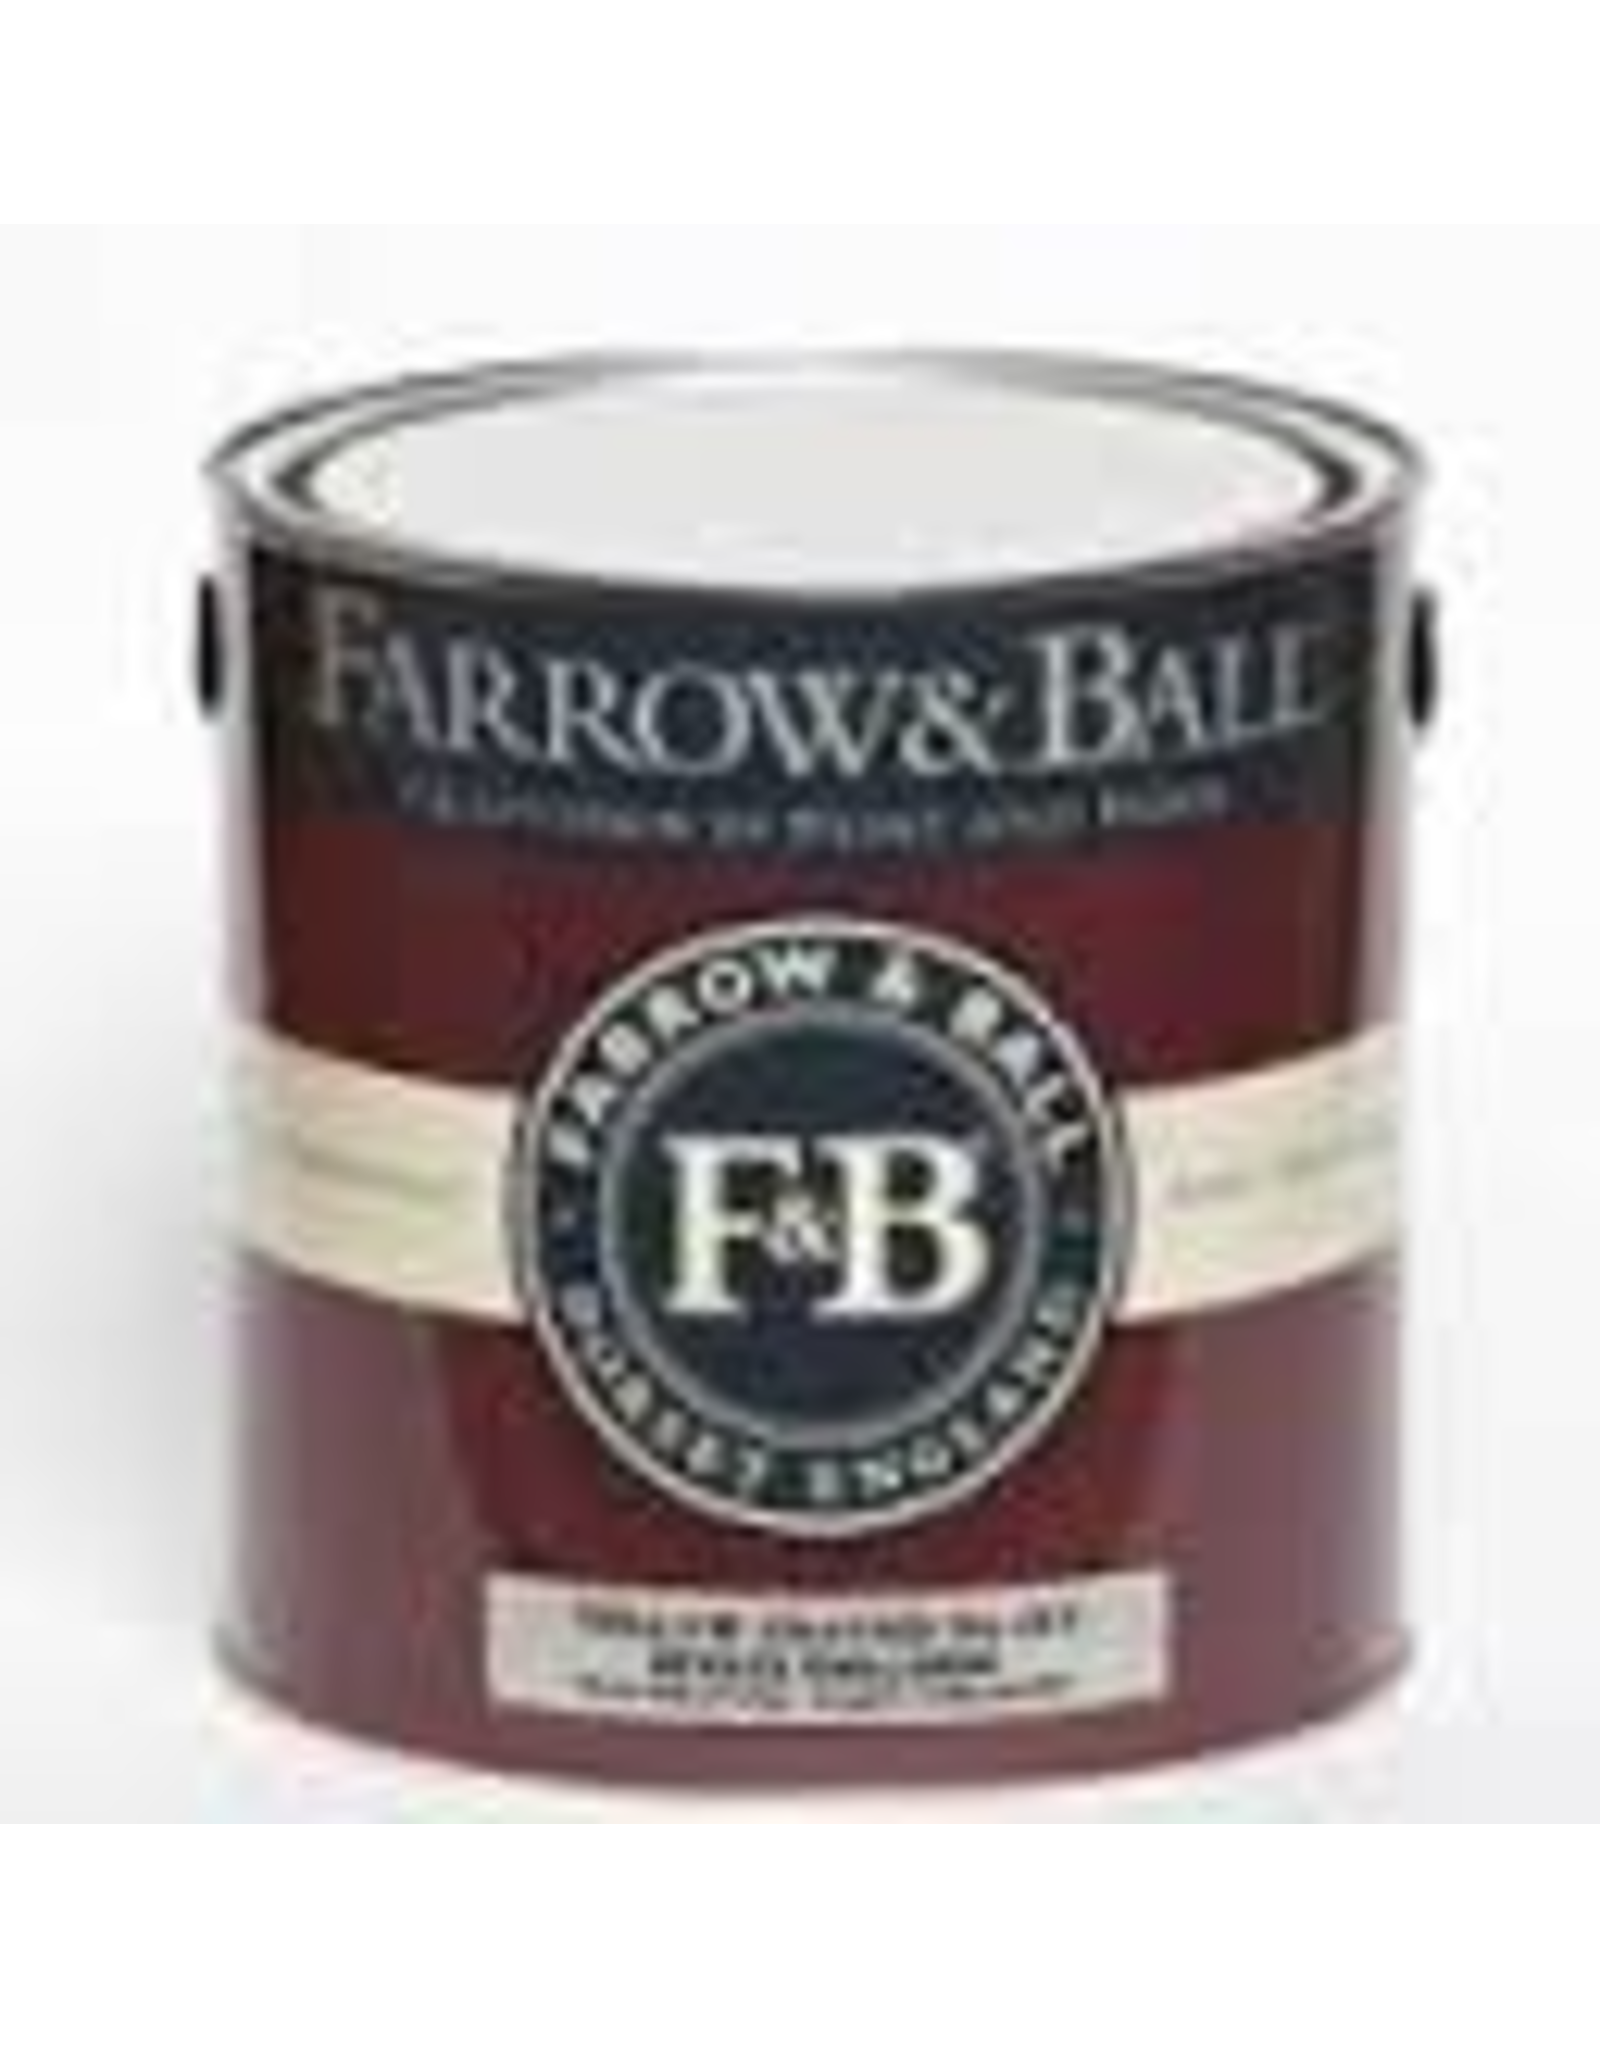 Farrow and Ball Gallon Modern Emulsion Middle Ground No. 209